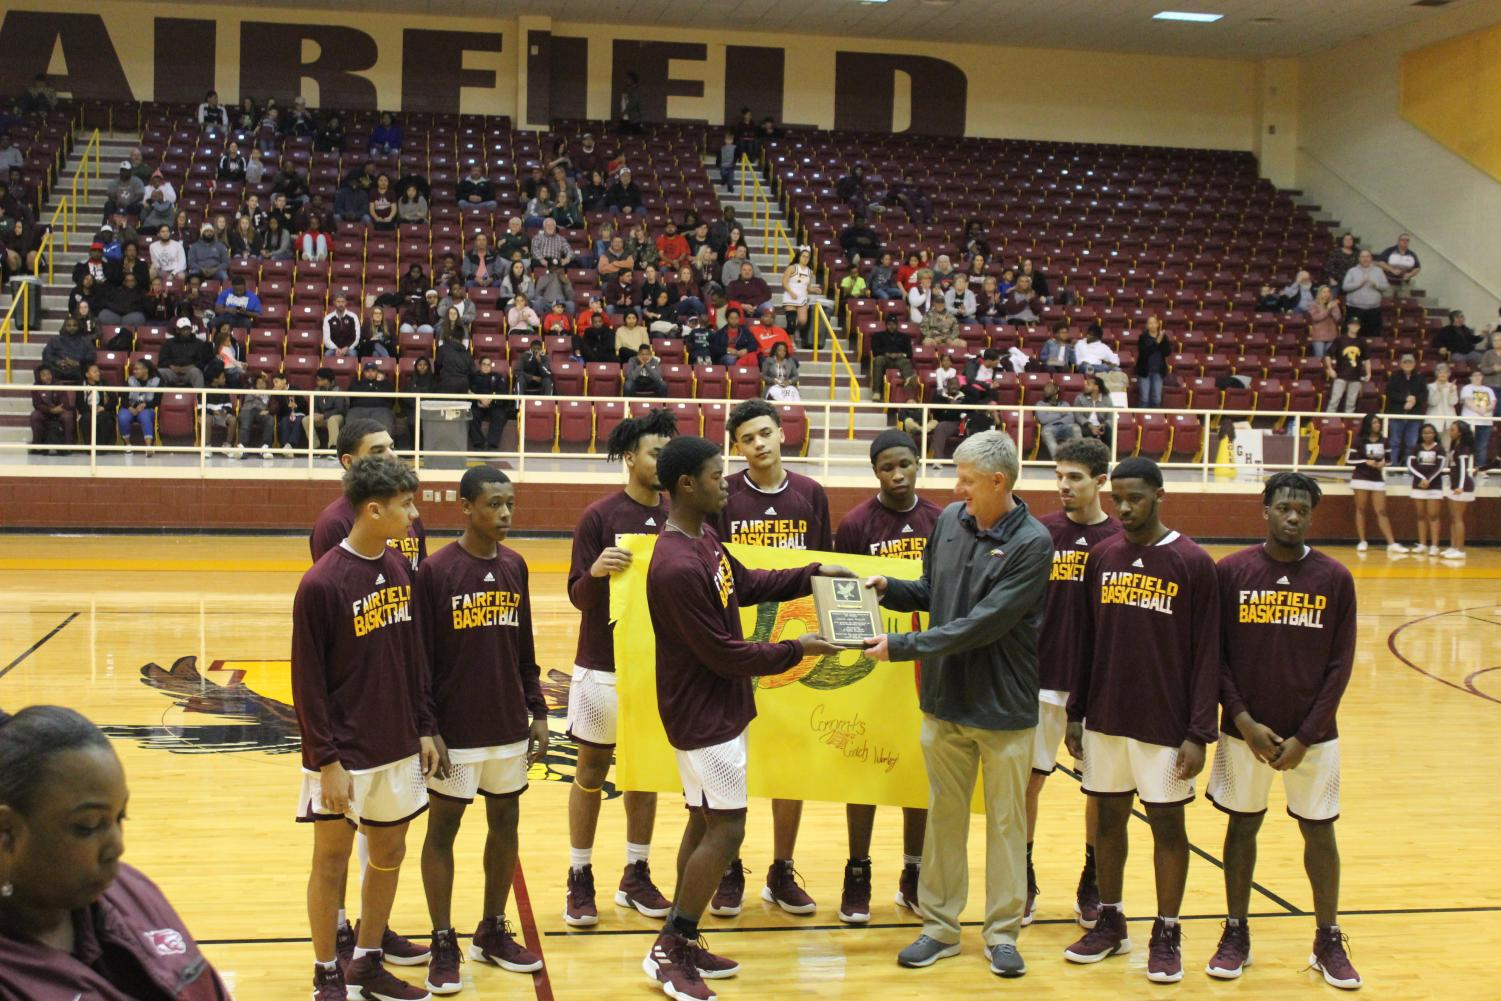 Senior Jaise Oliver presents coach Joey Worley with a plaque for his 400th win as a Fairfield basketball coach. Also pictured is the rest of the varsity basketball team. Photo by Paige Allen.